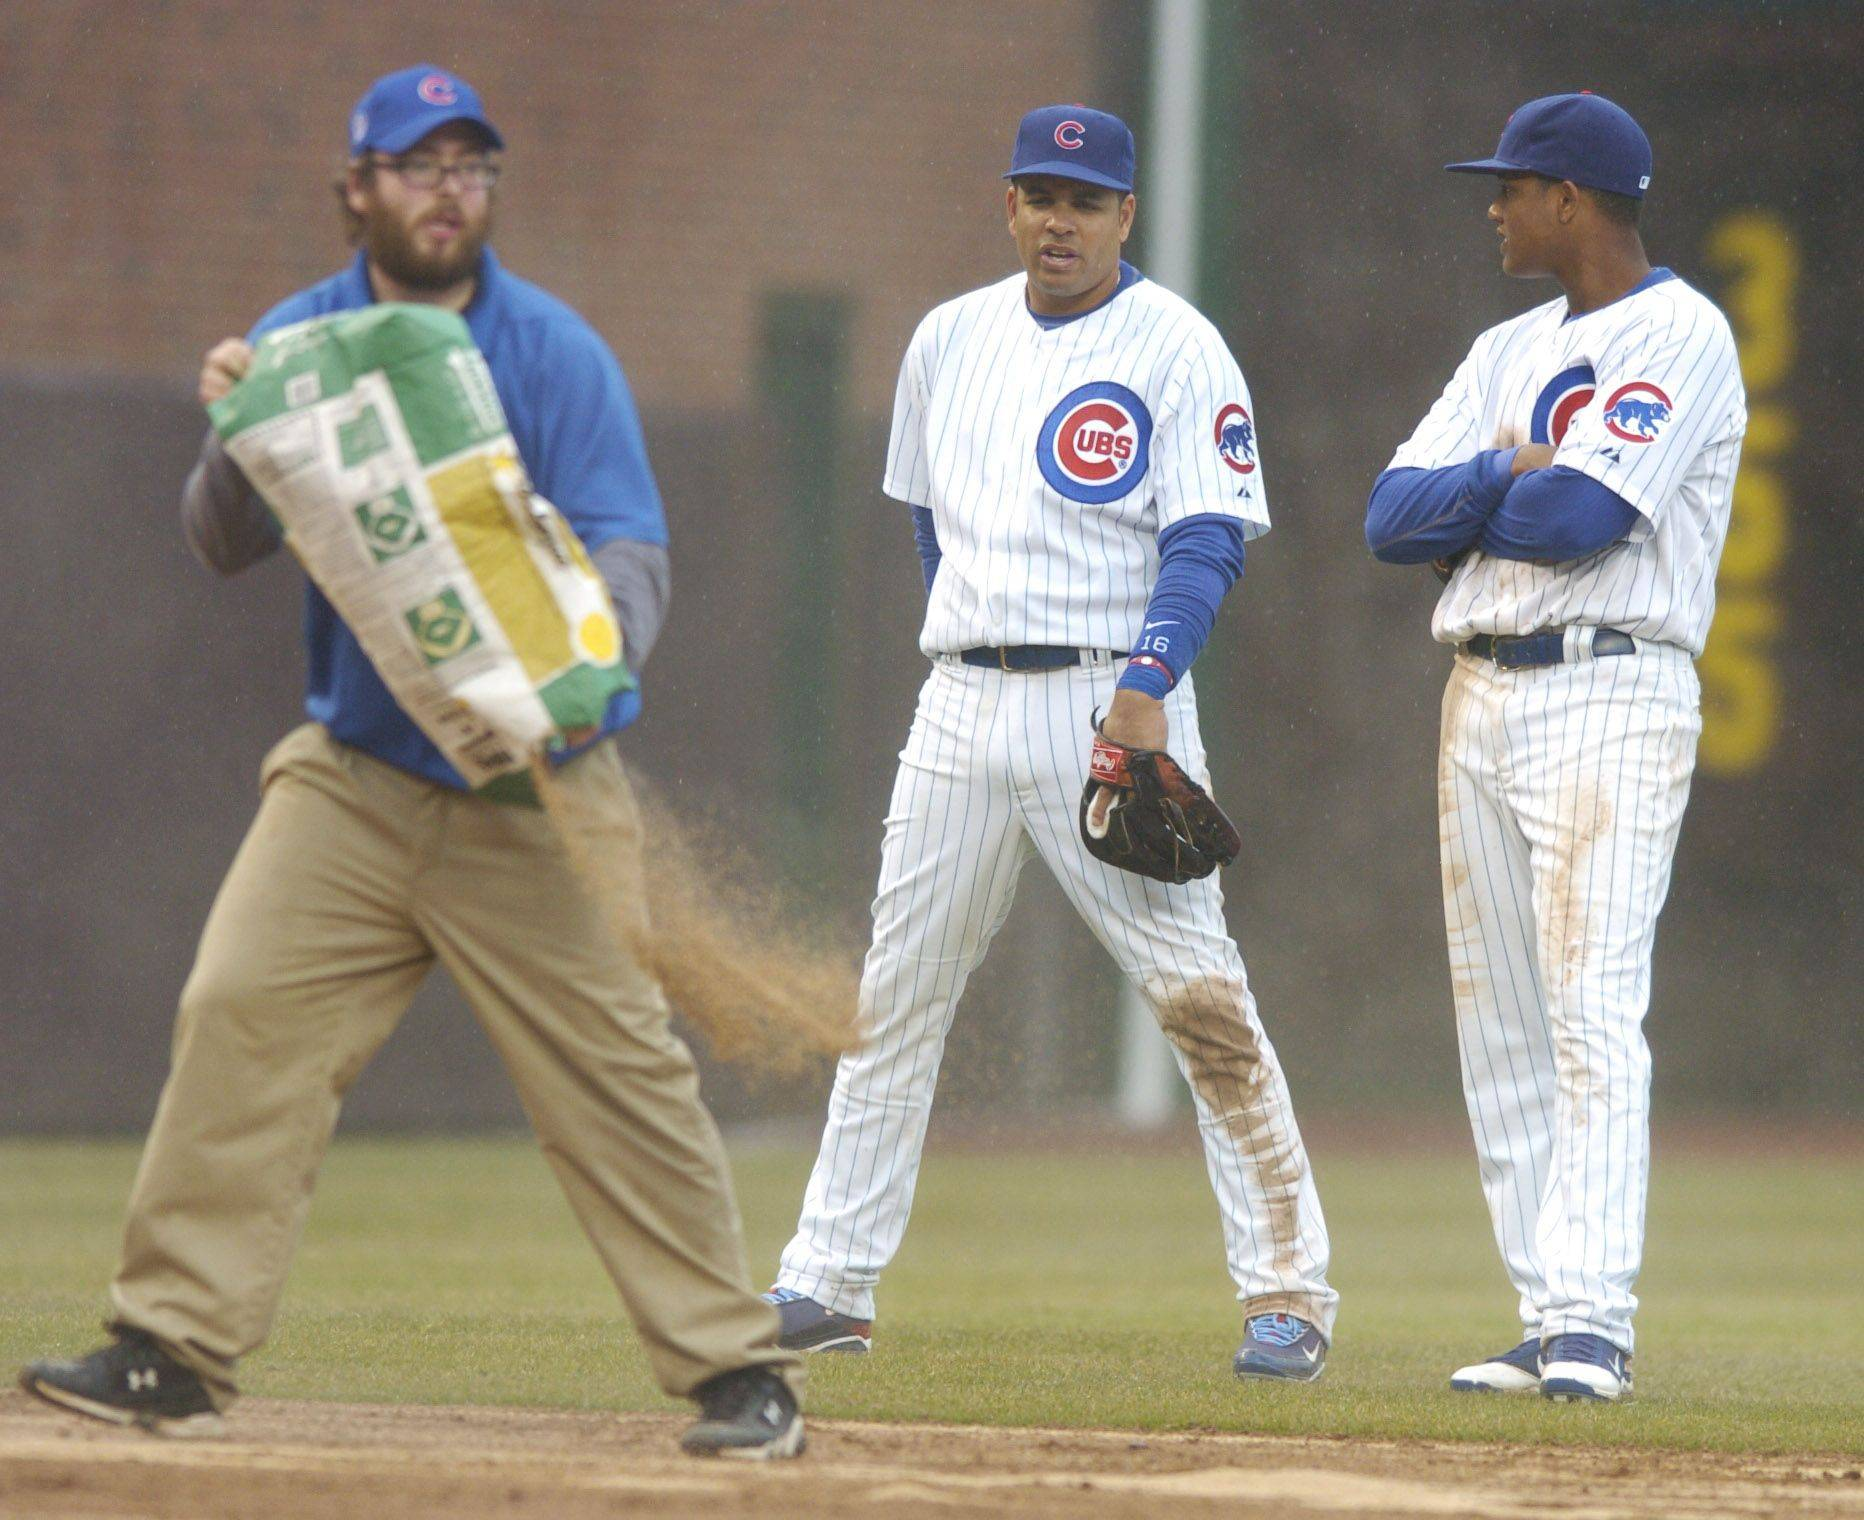 Cubs third baseman Aramis Ramirez, middle, and shortstop Starlin Castro chat as the grounds crew applies drying compound to the infield .